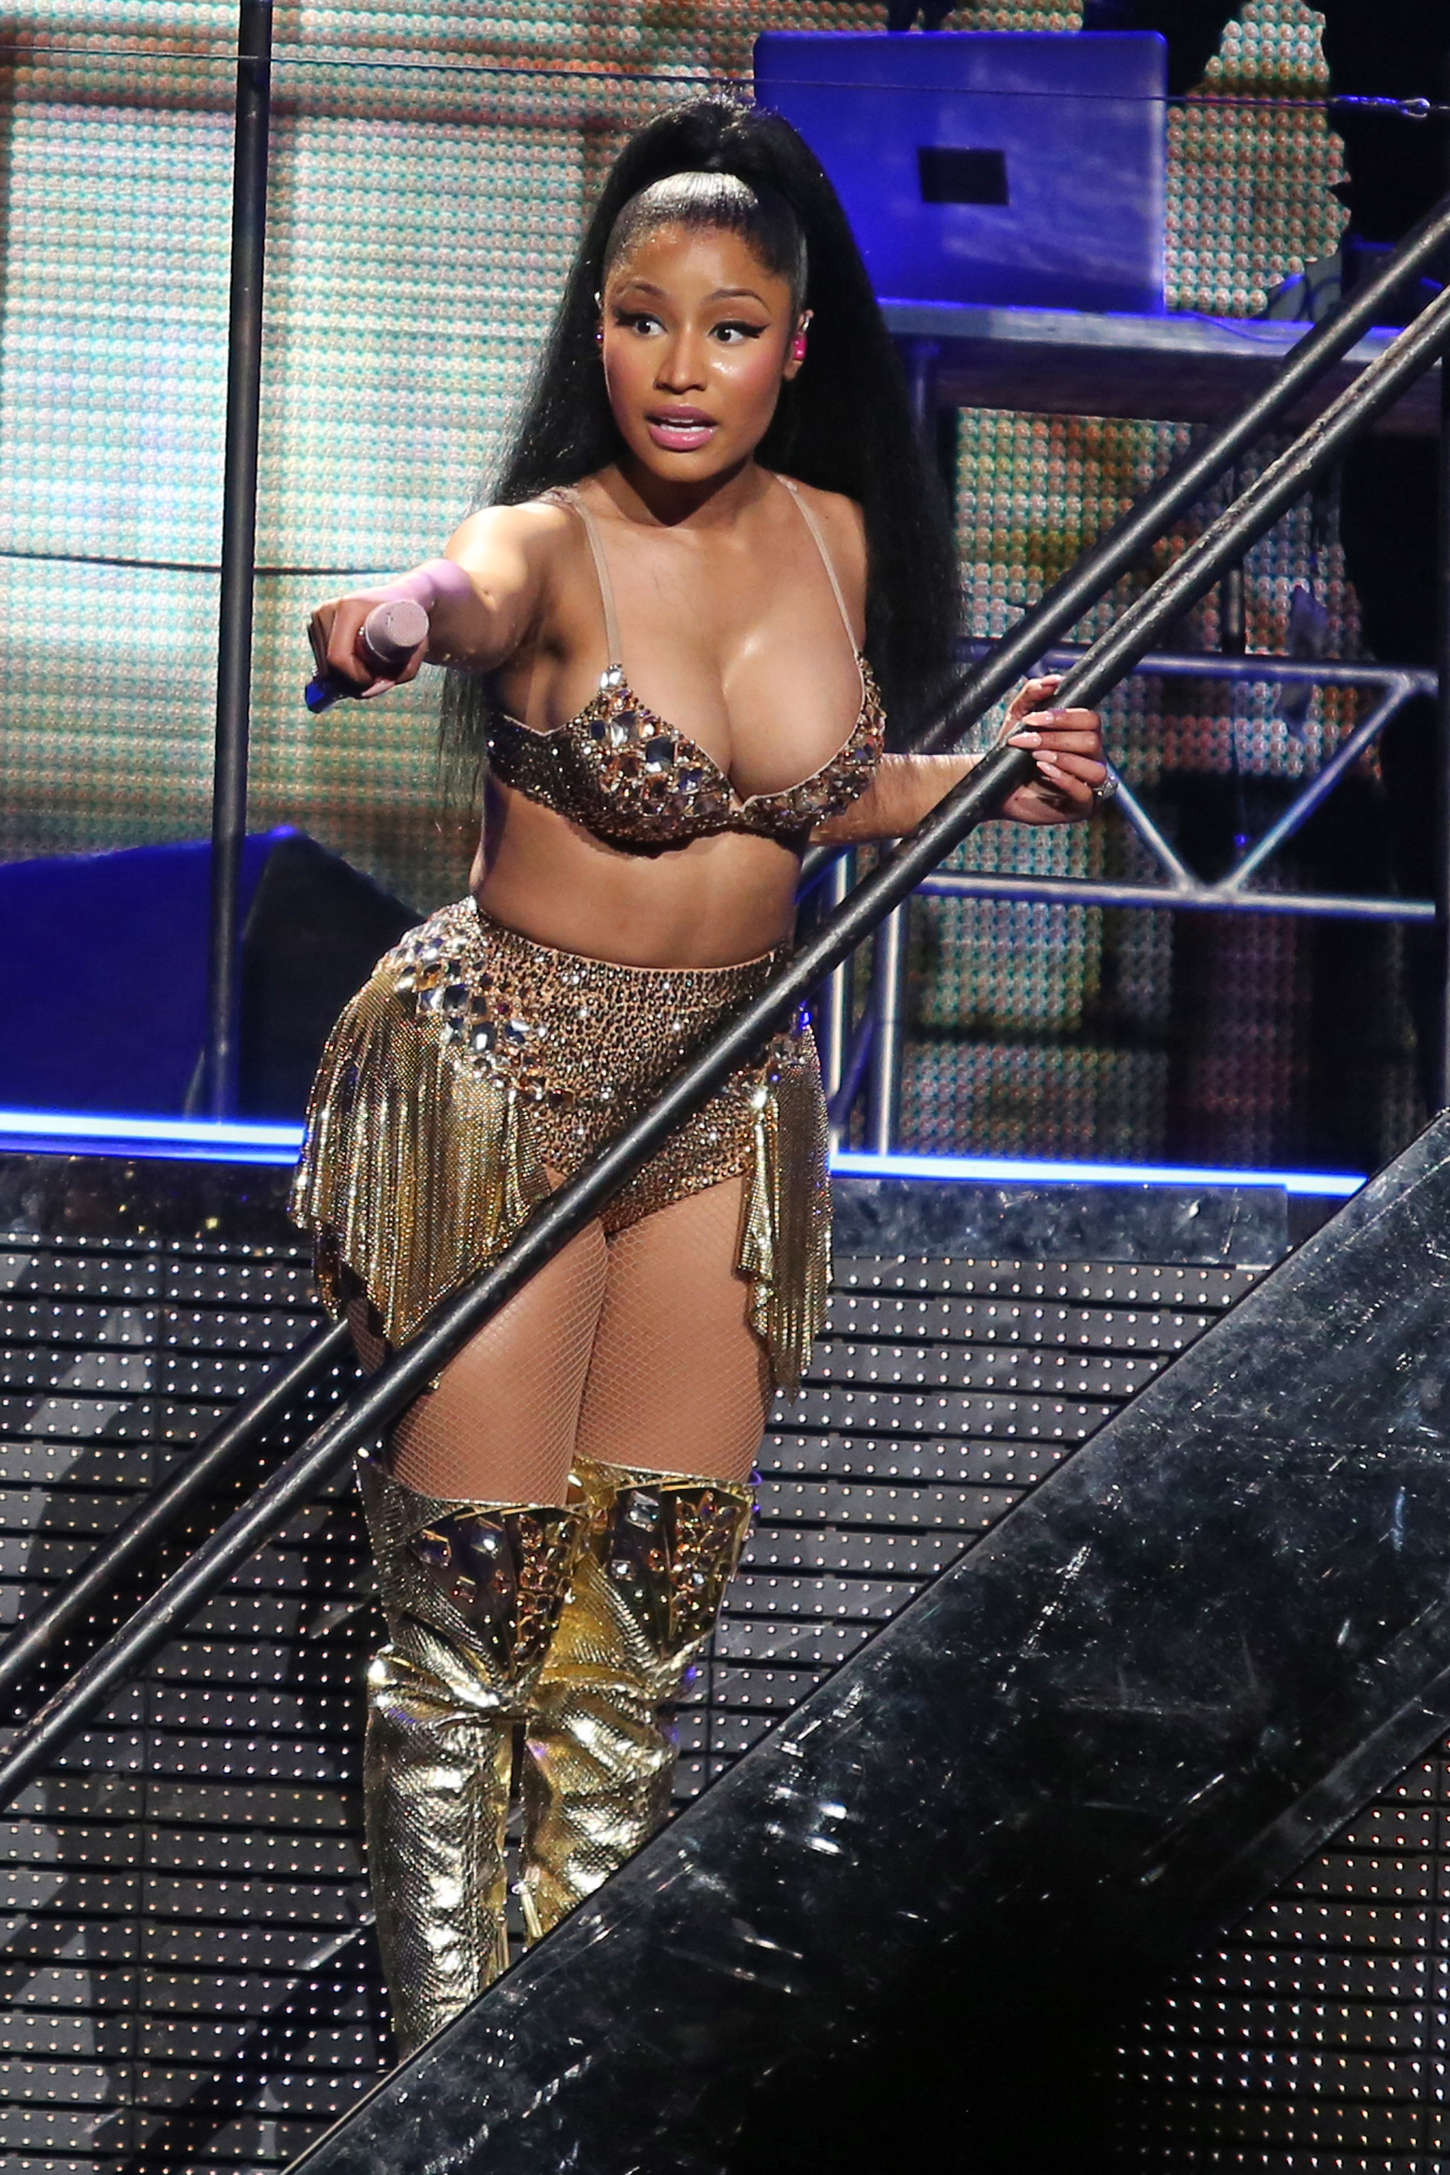 Nicki Minaj Cleavage Pics